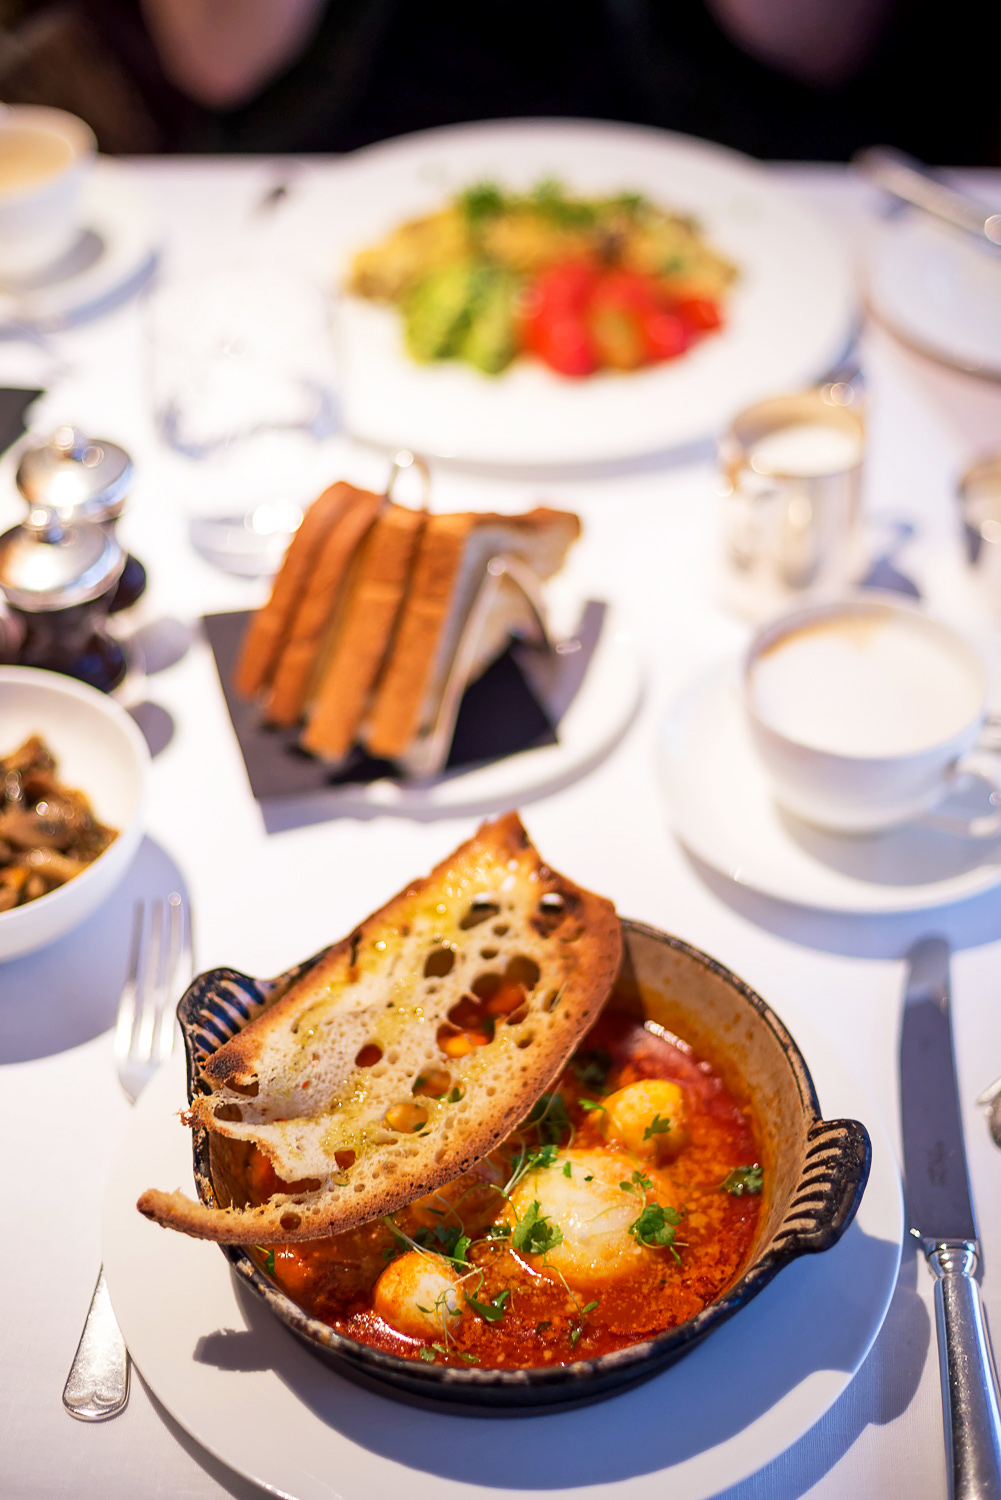 Start your day the Italian way with a delicious breakfast at Sartoria in Mayfair, London